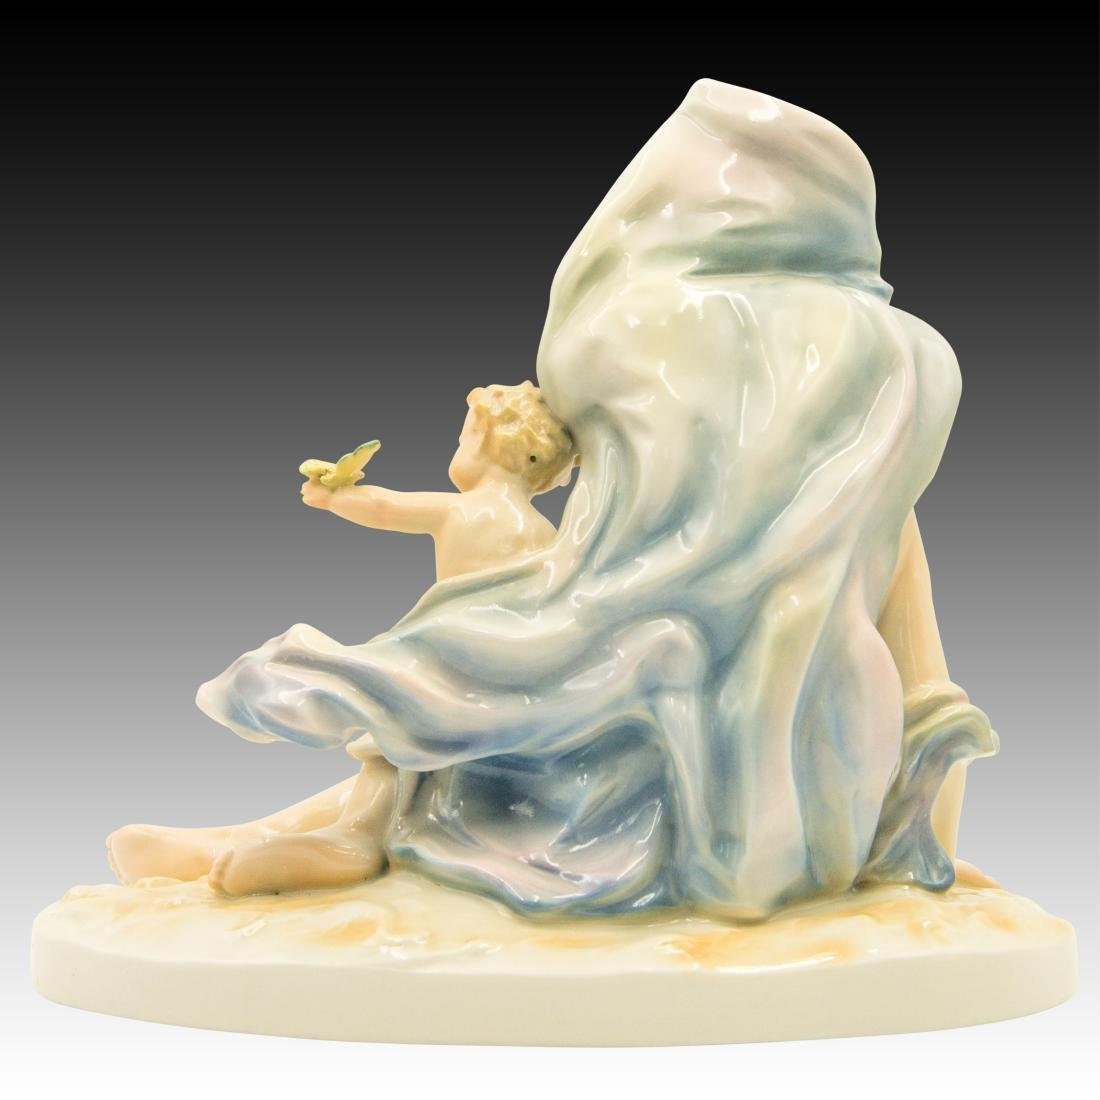 Karl ENS Porcelain Nude Woman with Child Figurine - 3